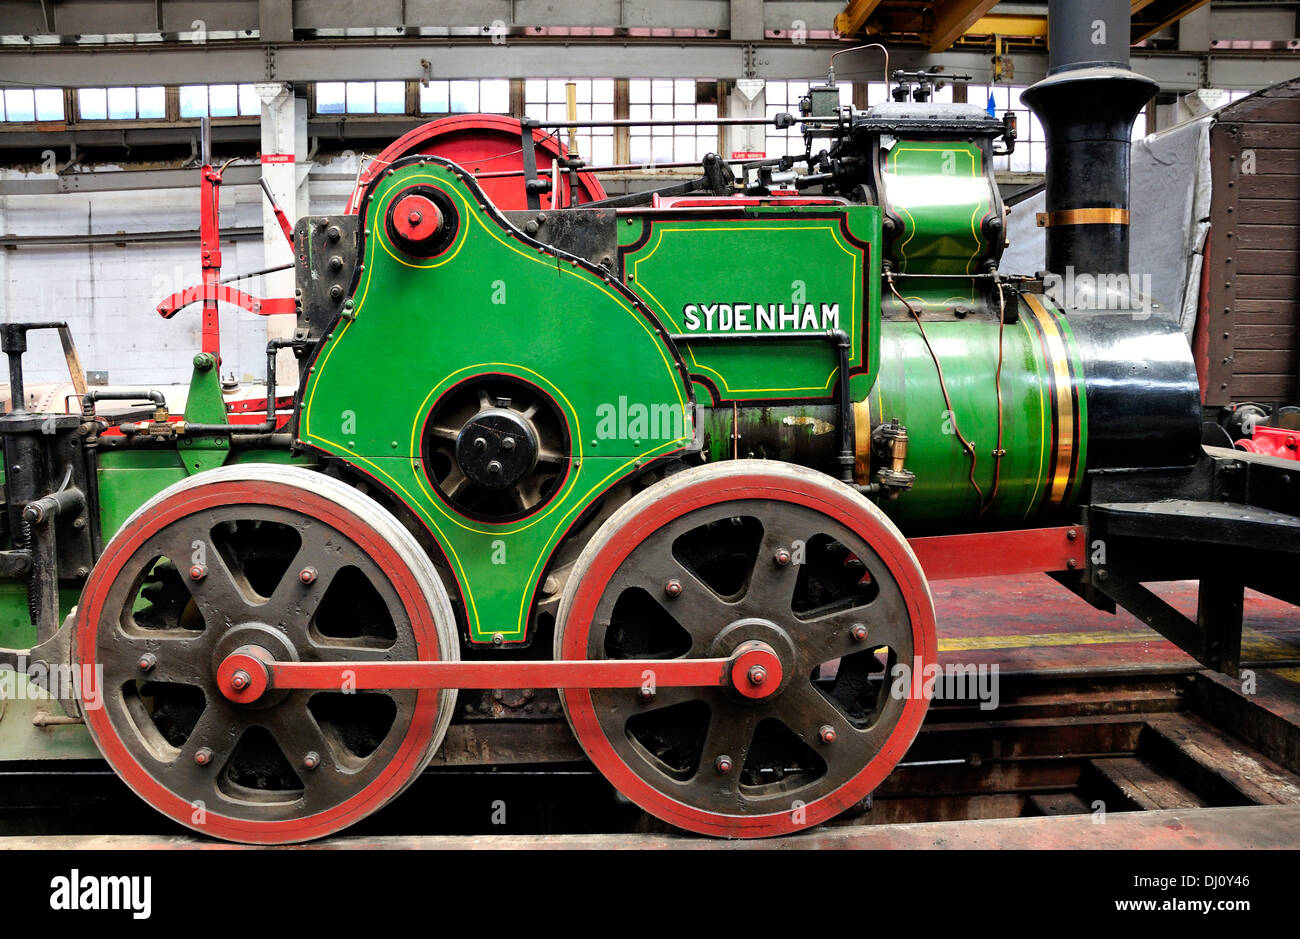 Chatham, Kent, England. Chatham Historic Dockyard. 'SYDENHAM' - Tramway Geared Locomotive (see description) - Stock Image